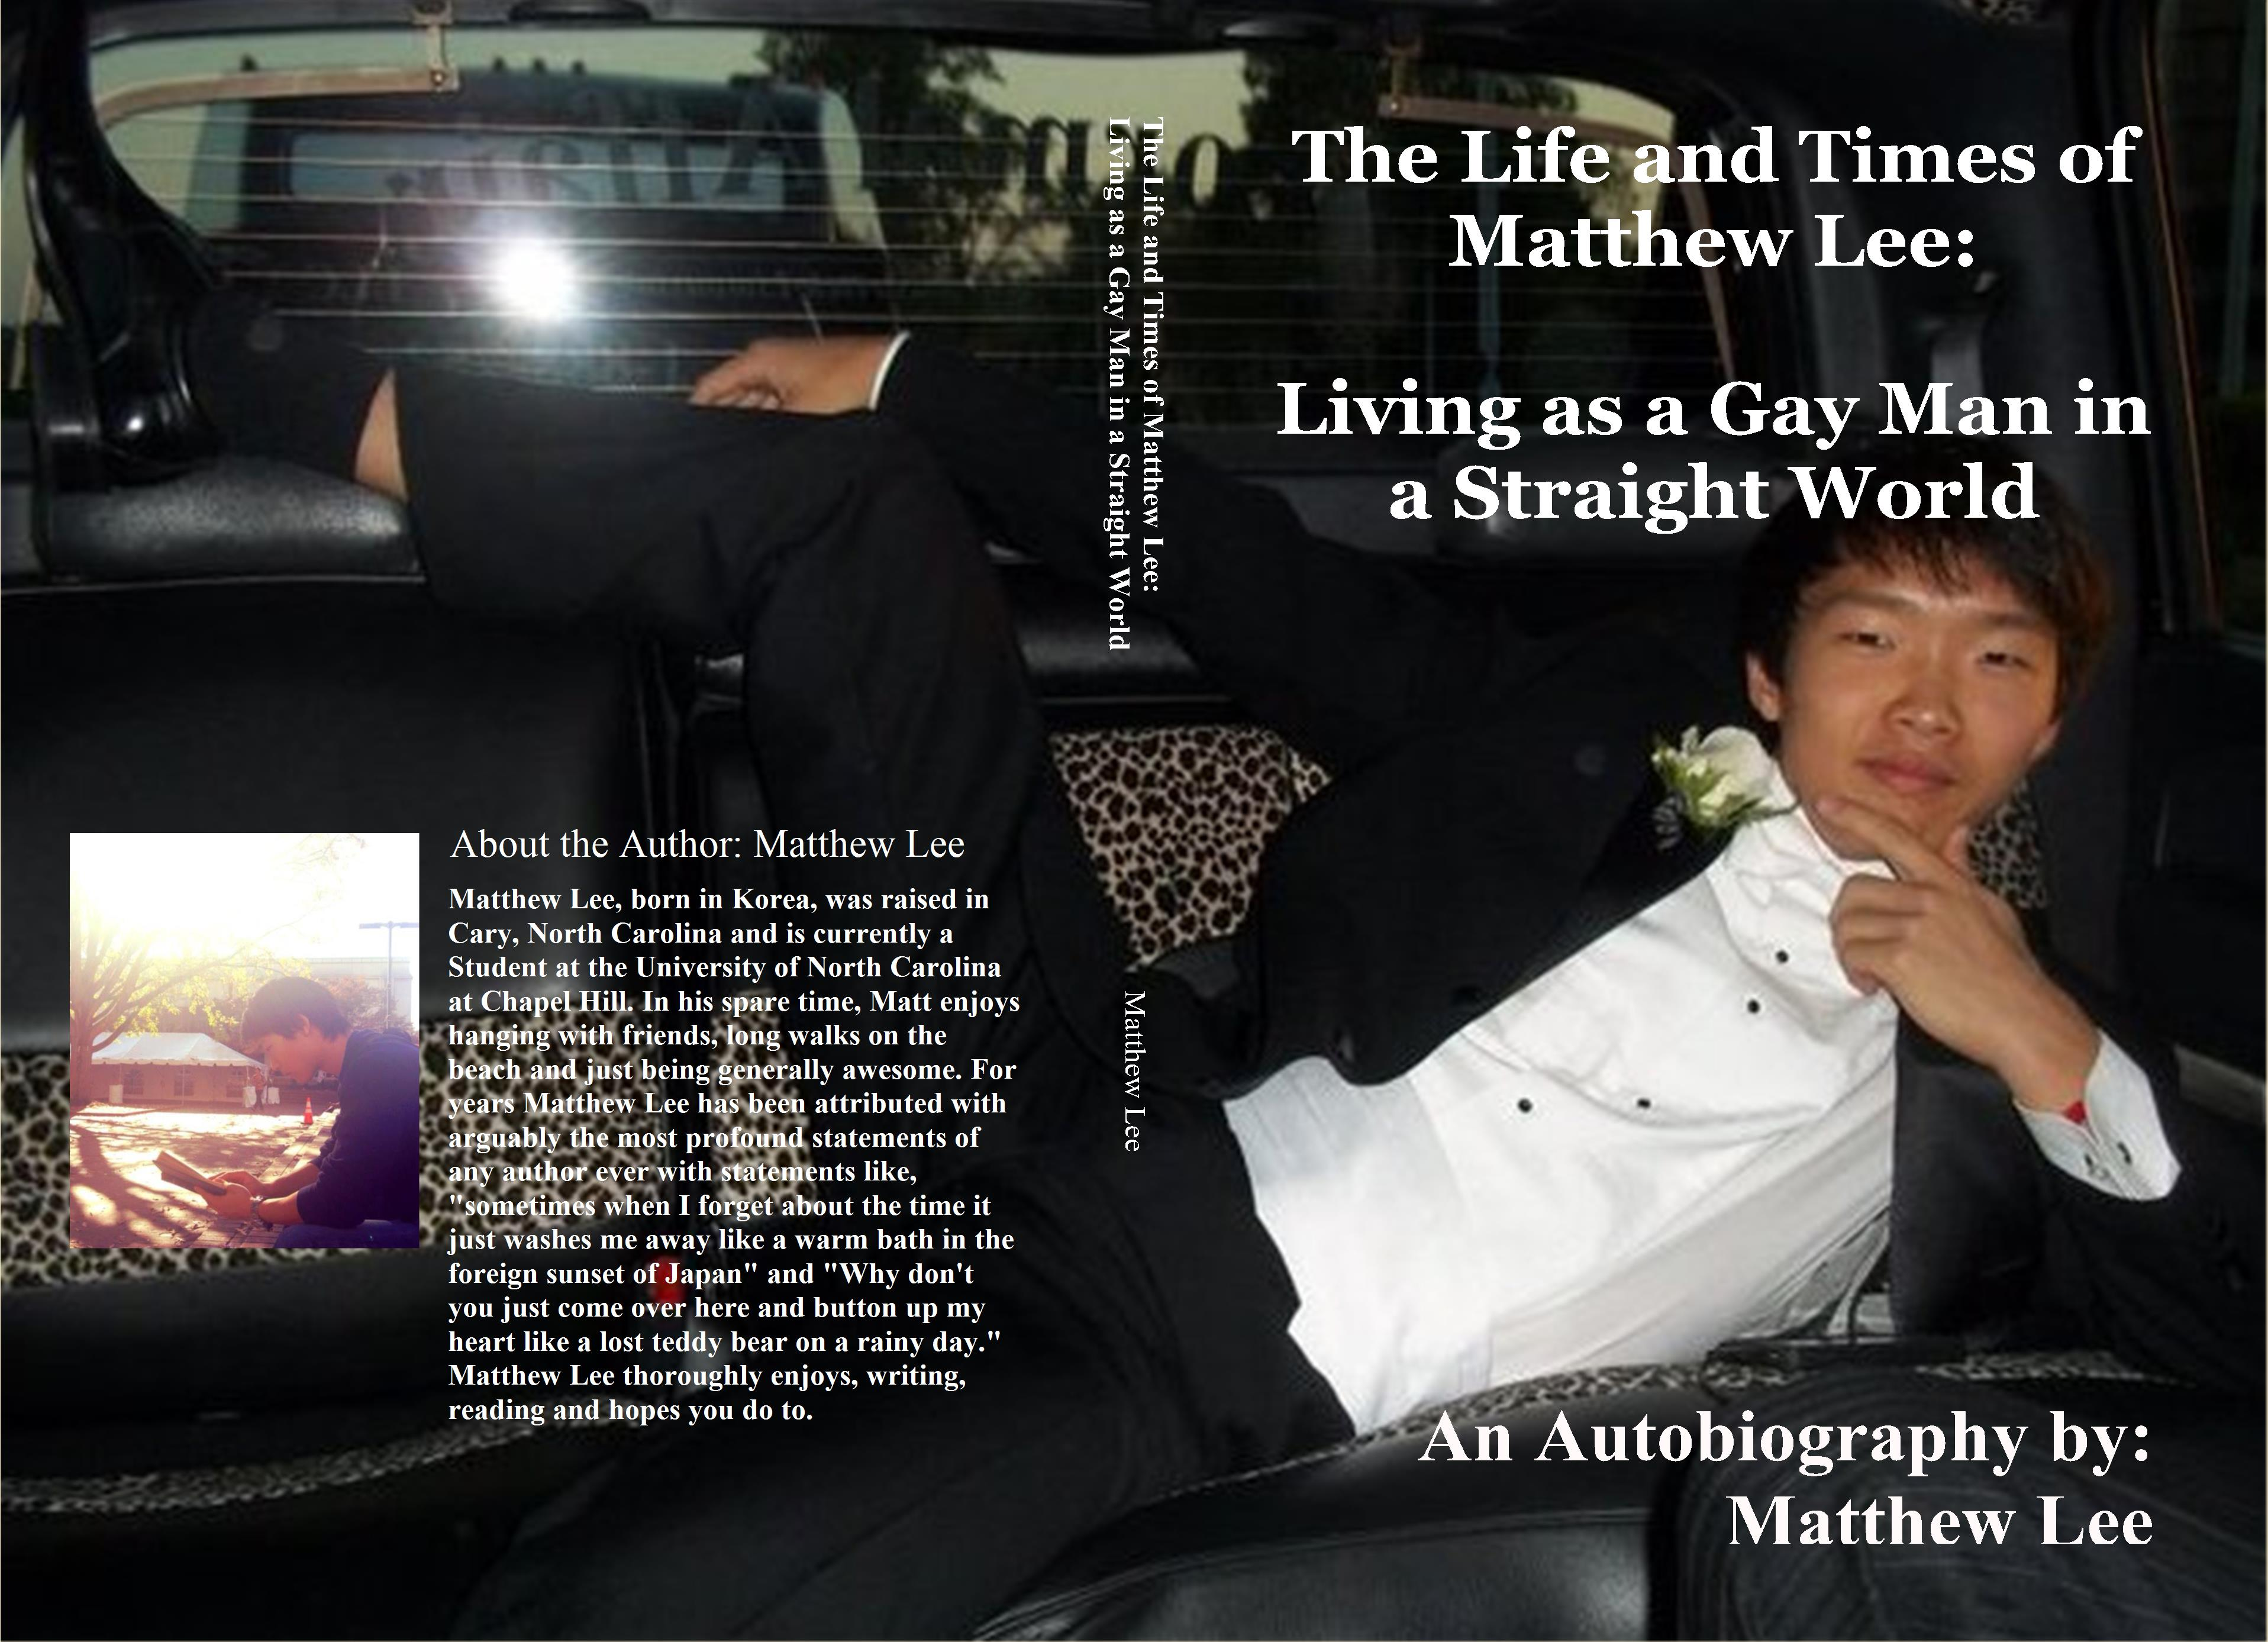 The Life and Times of Matthew Lee: Living as a Gay Man in a Straight World cover image